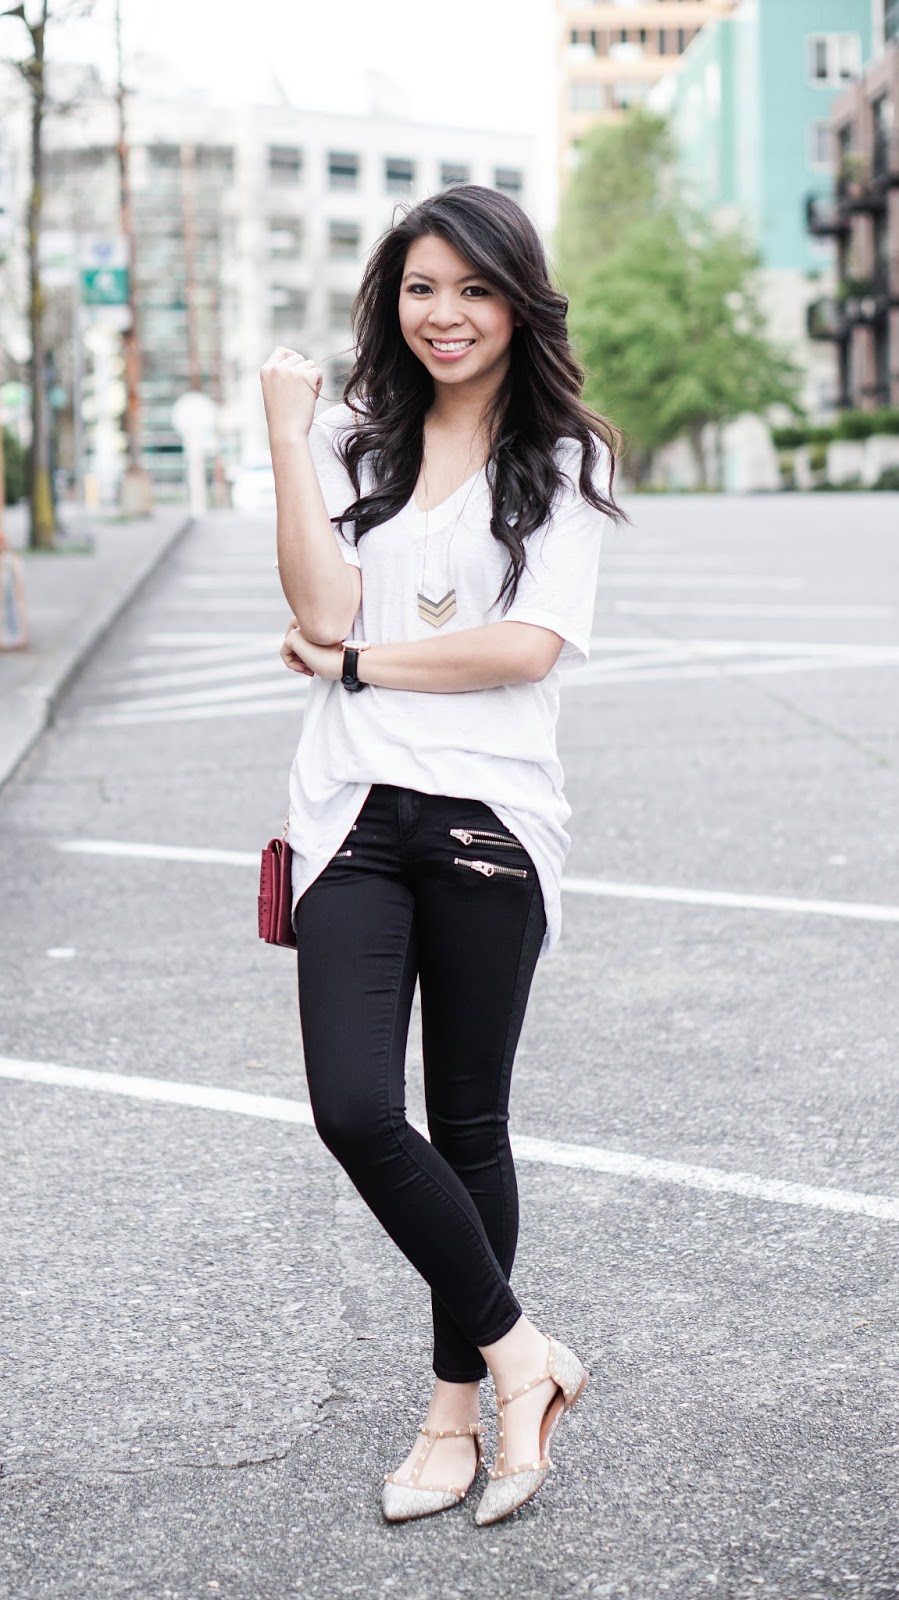 Black &amp White: Plain Tee and Zippered Jeans | Just a Tina Bit